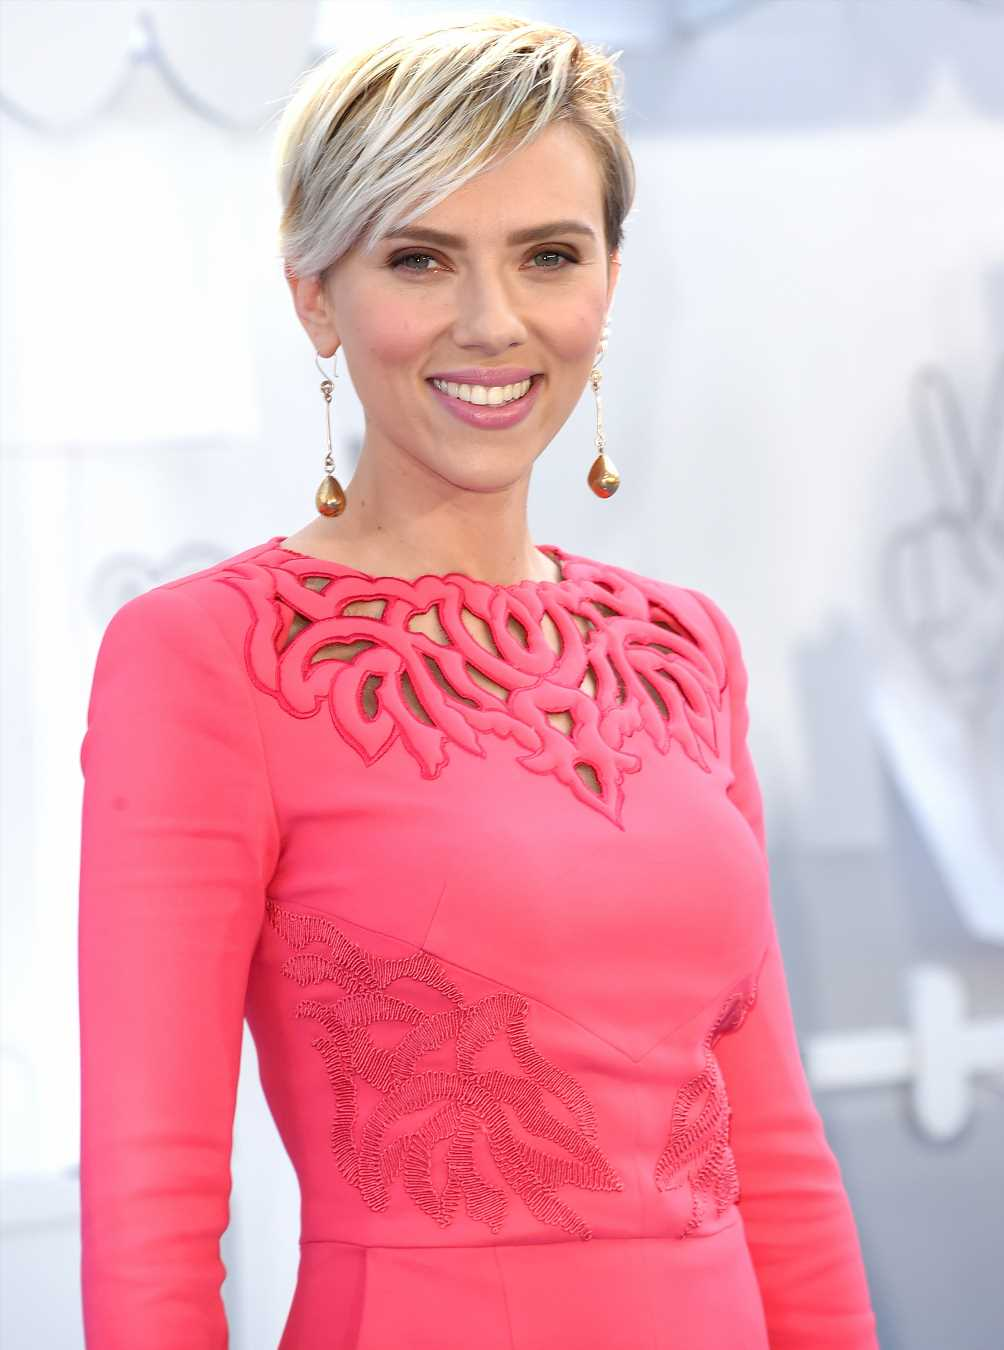 Scarlett Johansson Claims Her Remark on Being 'Allowed to Play Any Person' Was 'Taken Out of Context'